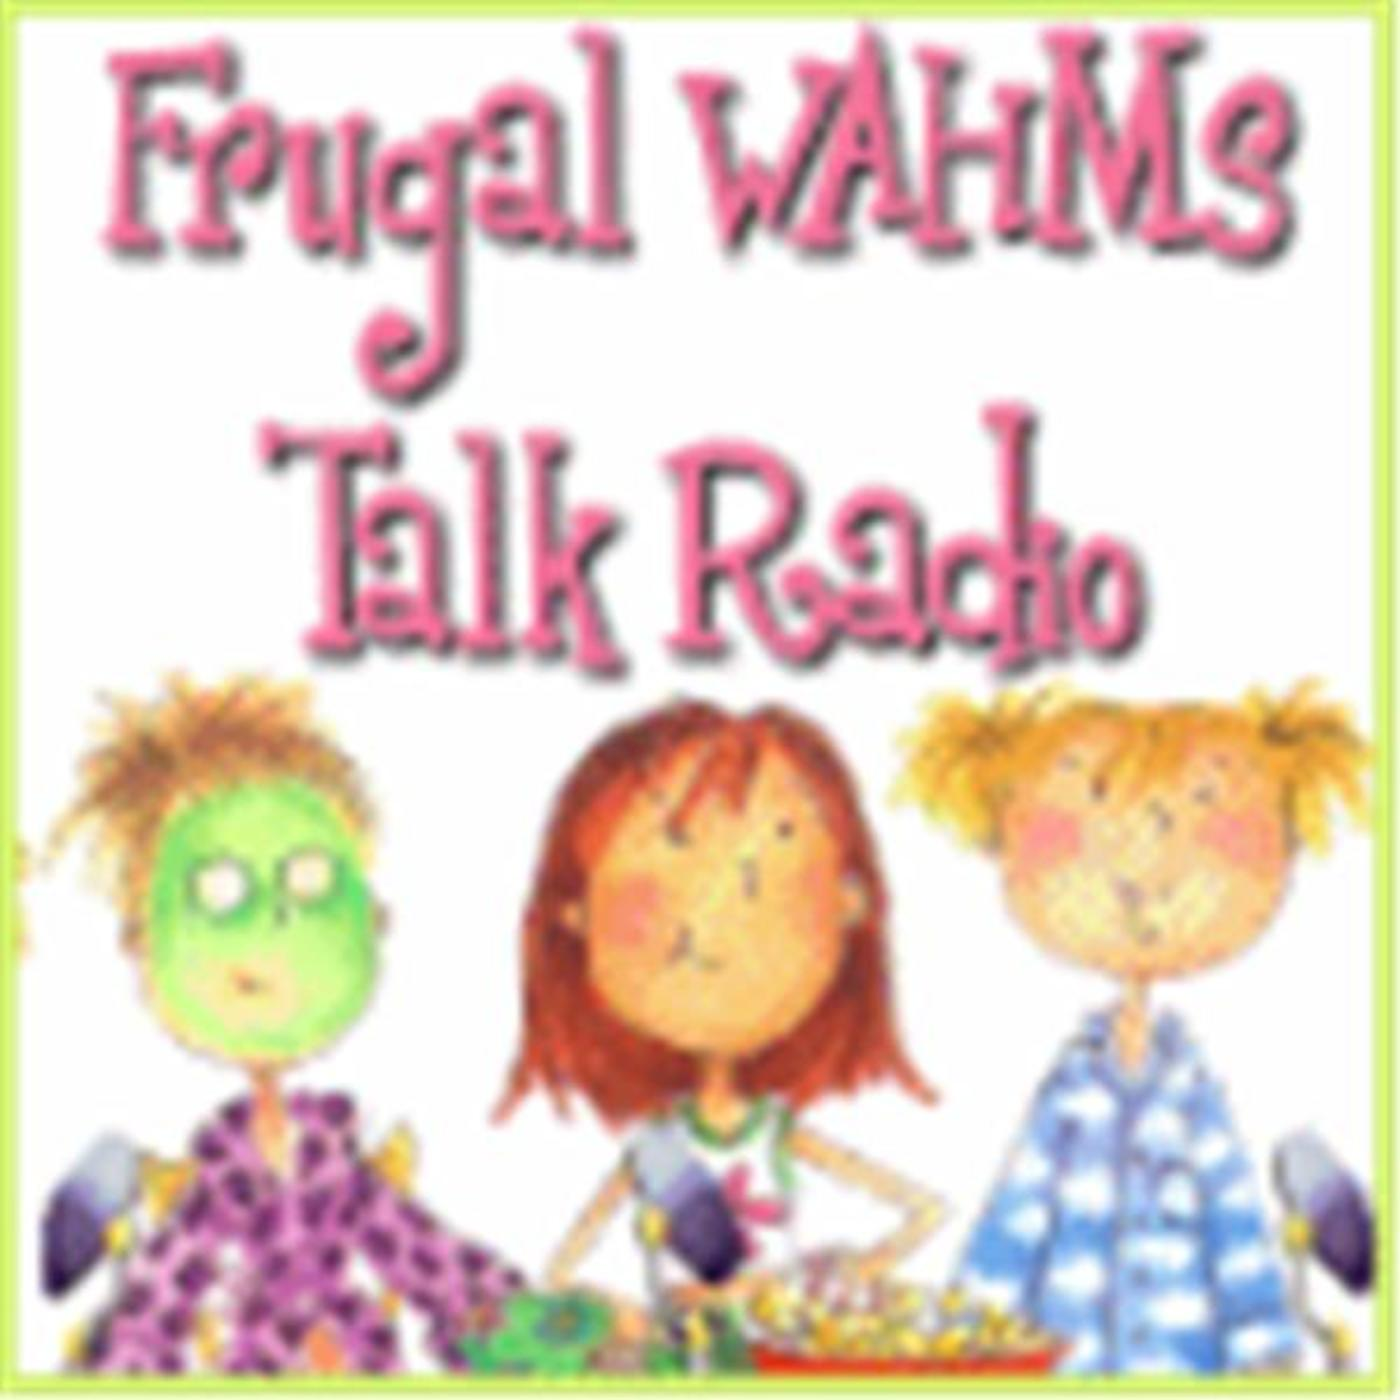 Frugal WAHM Talk Radio